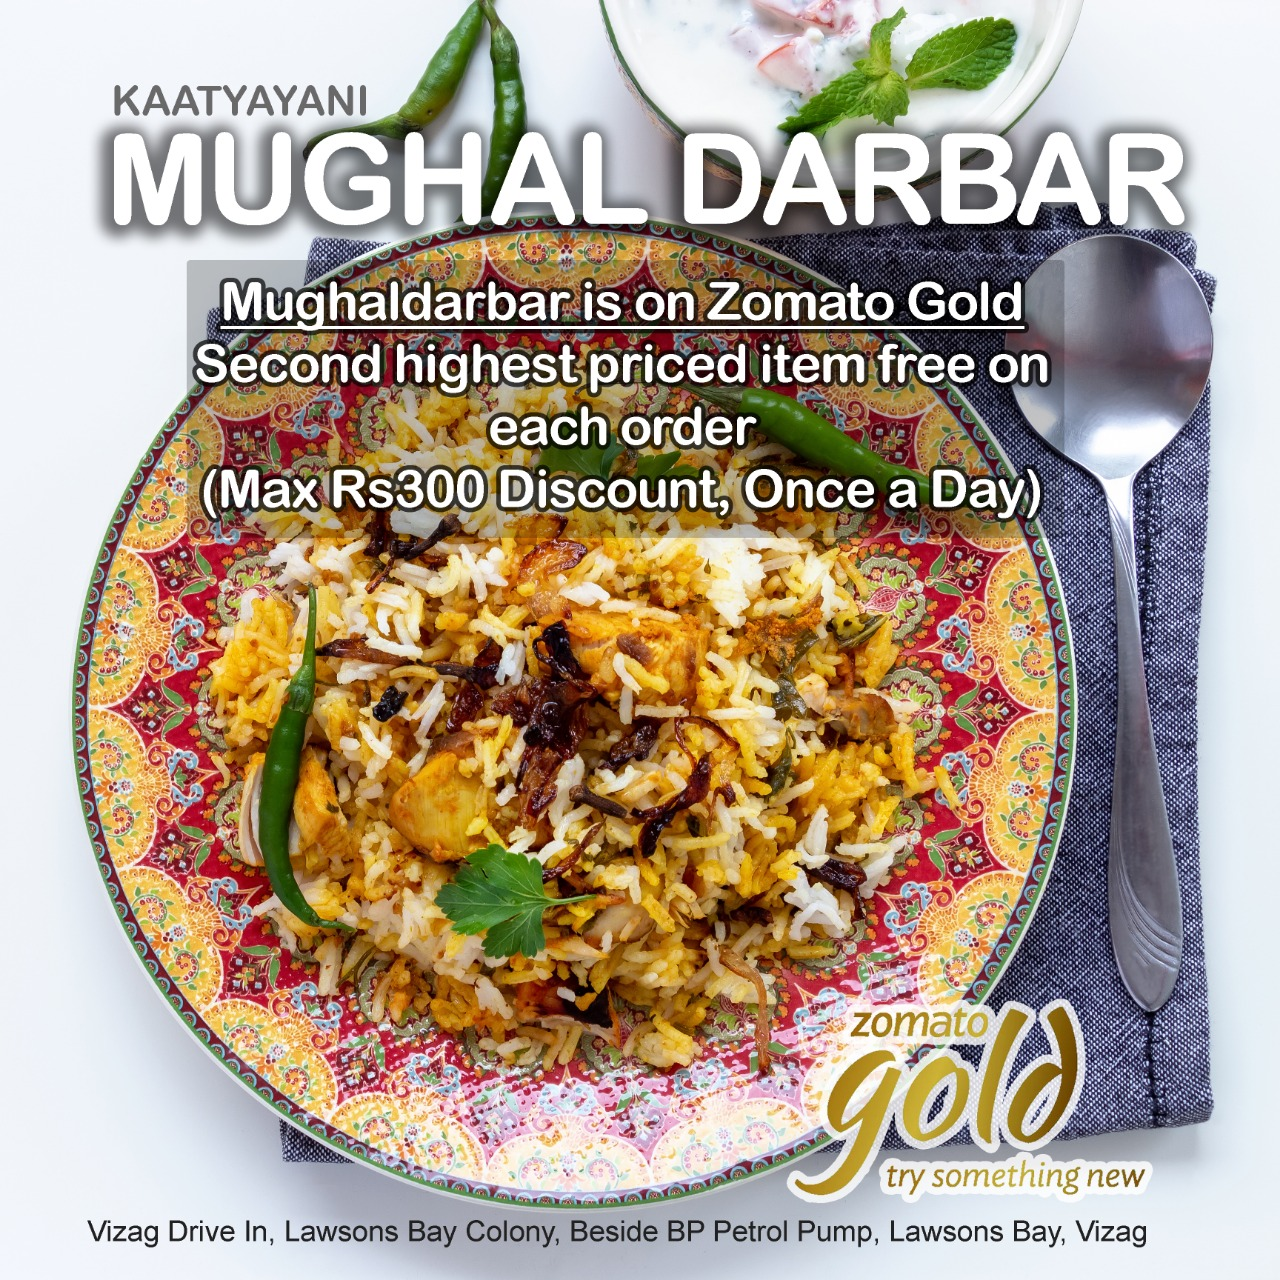 Get second item for free | Mughaldarbar on Zomato